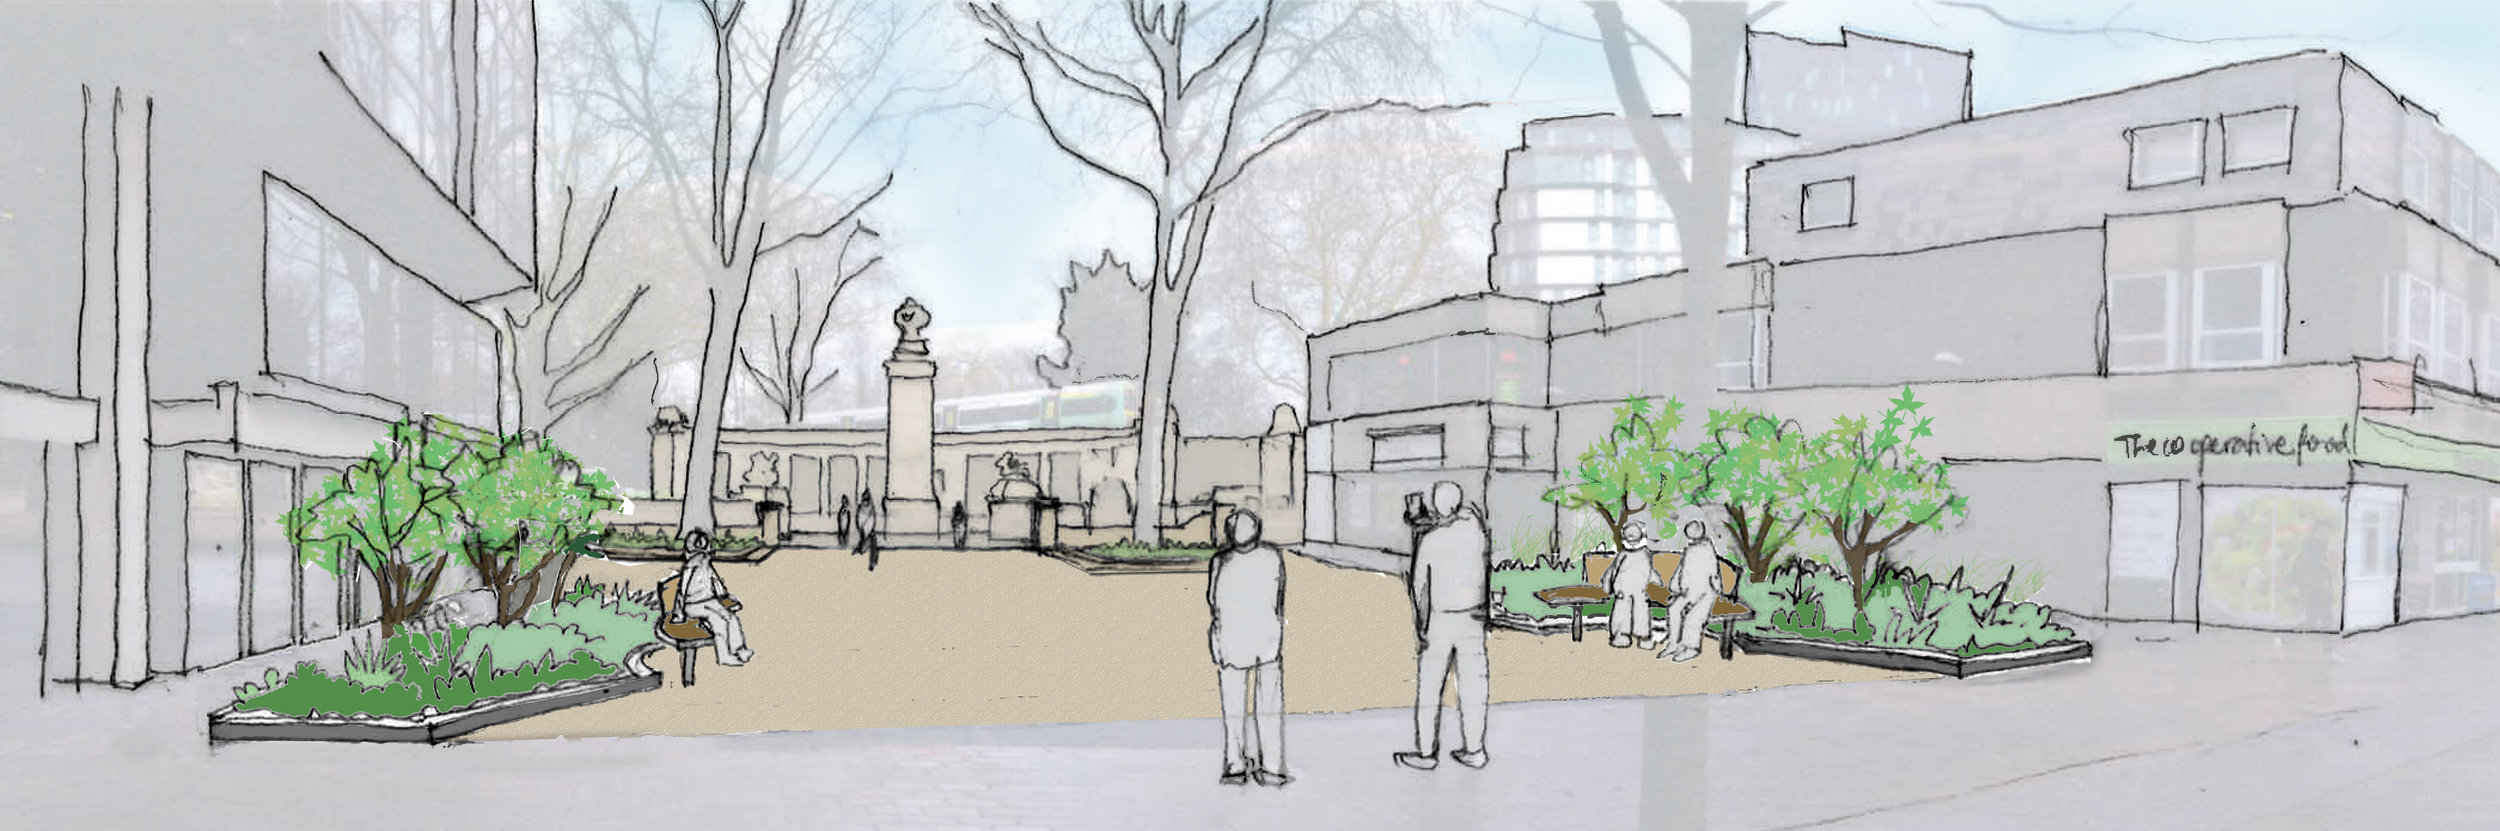 Planning permission granted for Guildhall Square memorial space